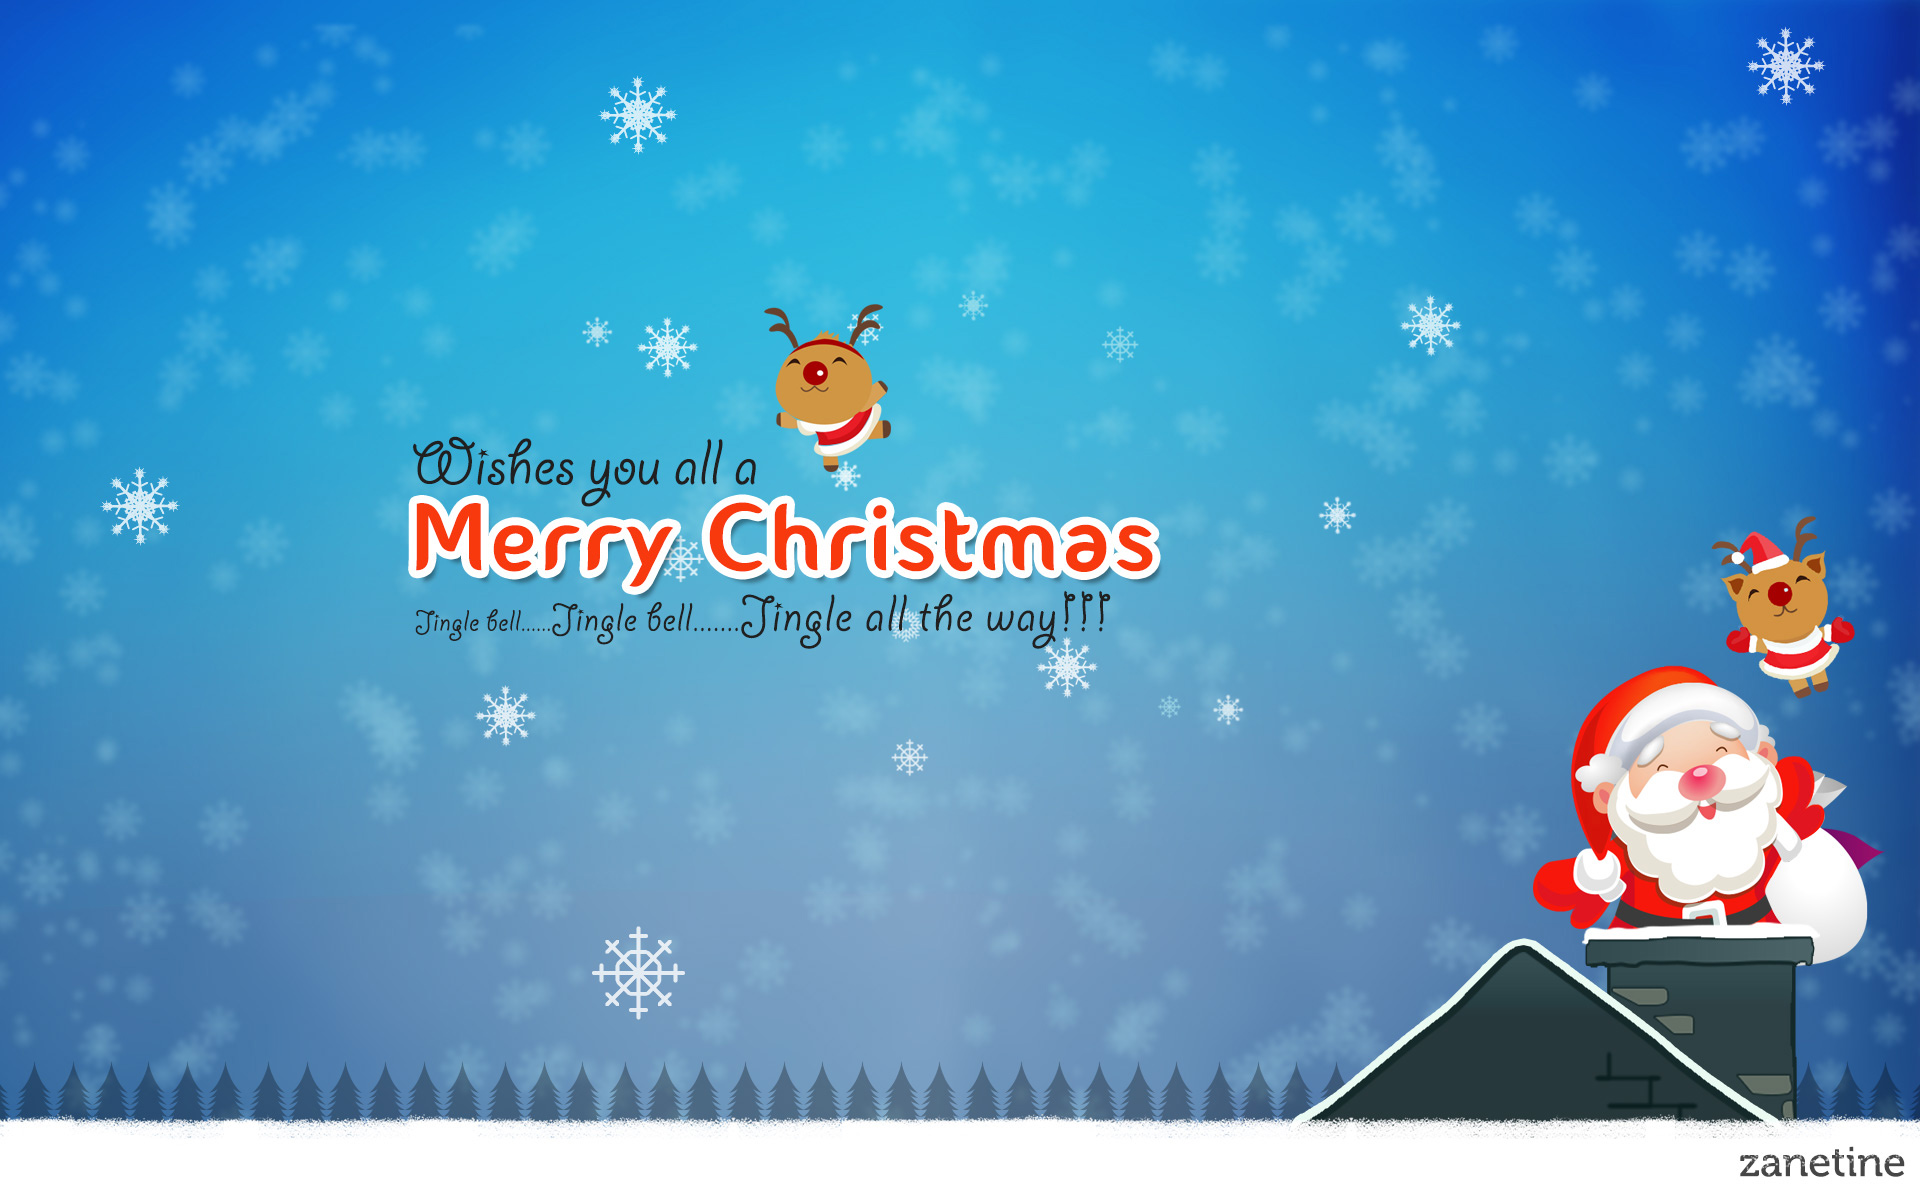 Merry Christmas Jingle Bells Desktop Wallpaper 1920x1200